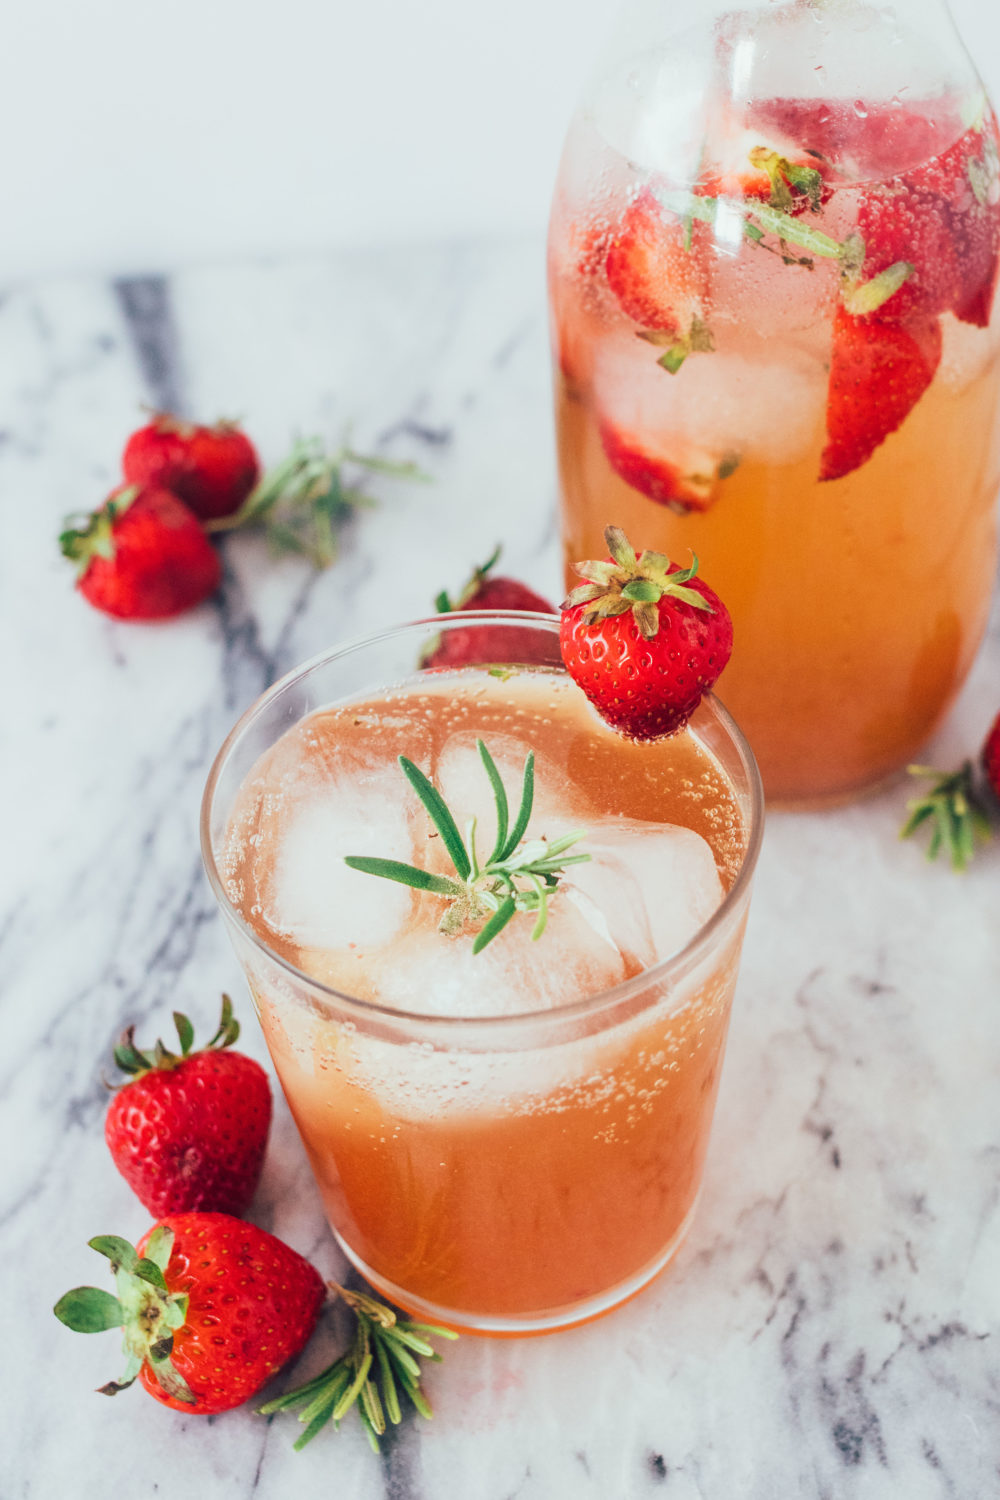 Strawberry Shrub Drinking Vinegar. An easy, probiotic DIY recipe that's paleo, healthy, gluten-free, dairy-free, whole30